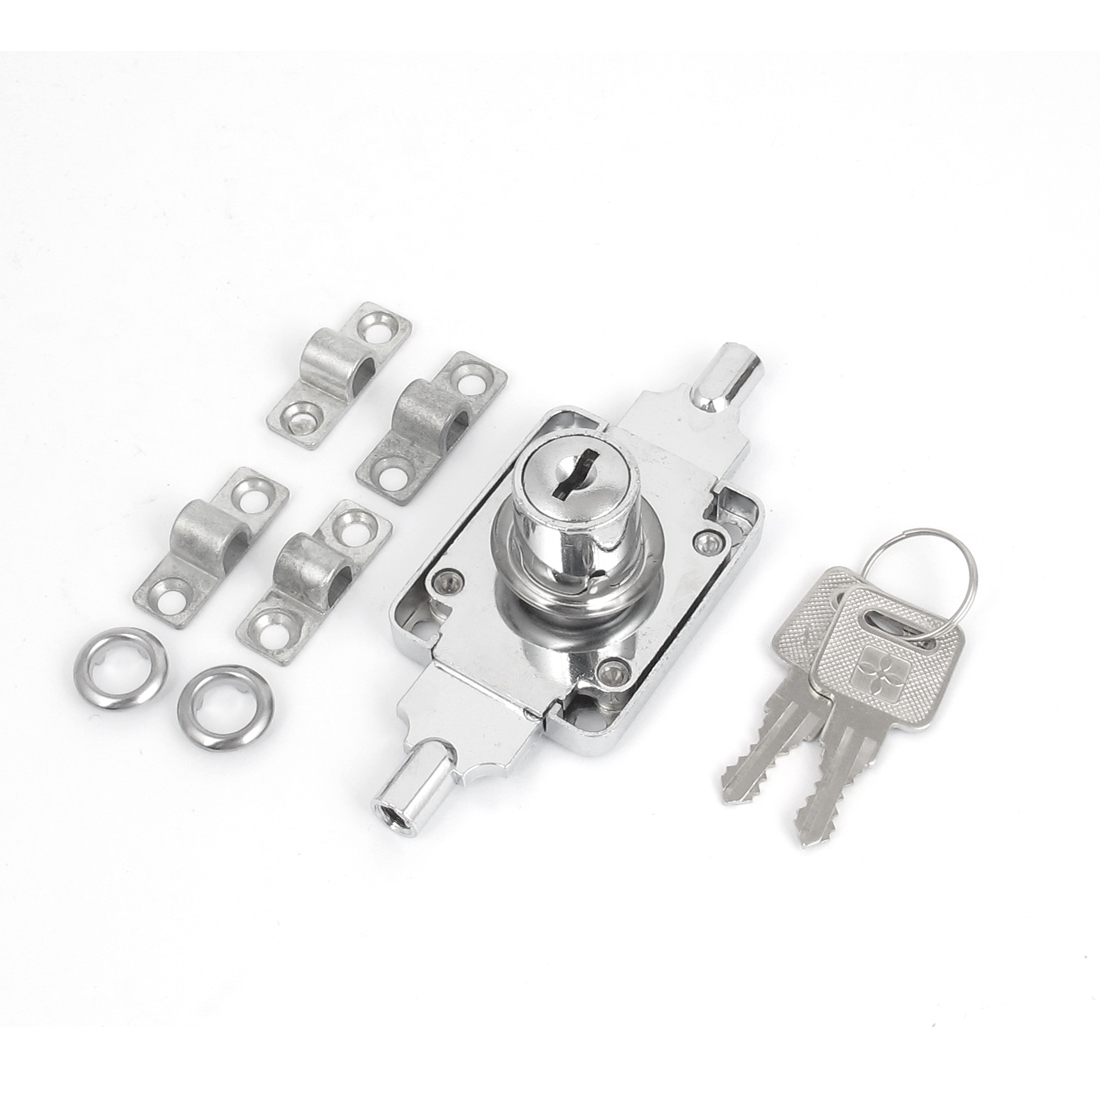 Office Warehouse Rolling Shutter Door Lock Roller Latch Silver Tone w 2 Keys